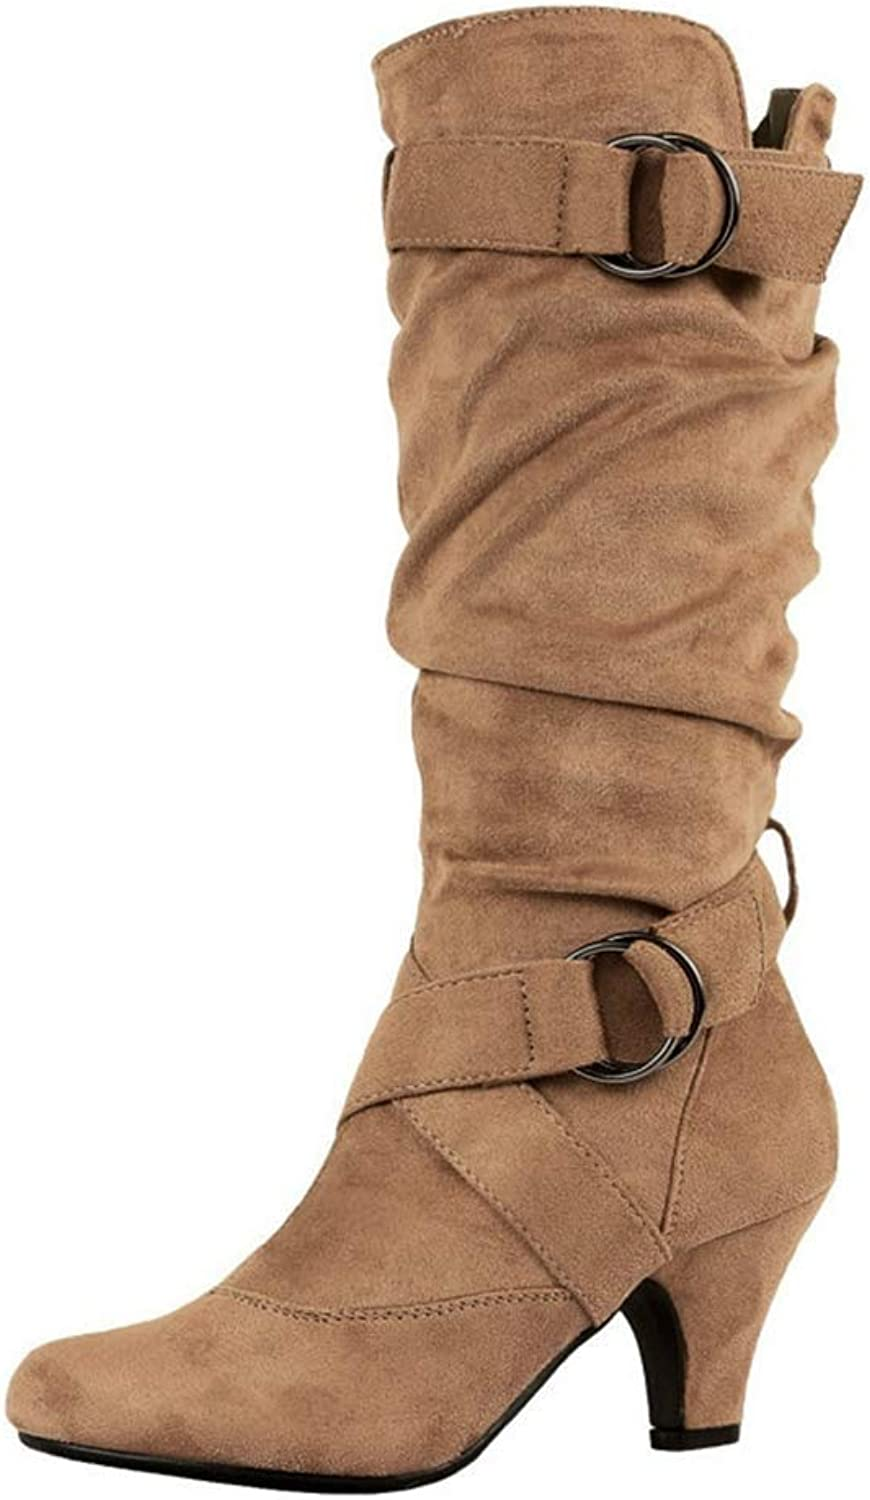 Ghssheh Fashion Womens Winter Slouchy Mid Calf Boots Casual Belt Buckle Boots Women Suede Sexy Low Heels Boots Martin Boots Black 5.5 M US